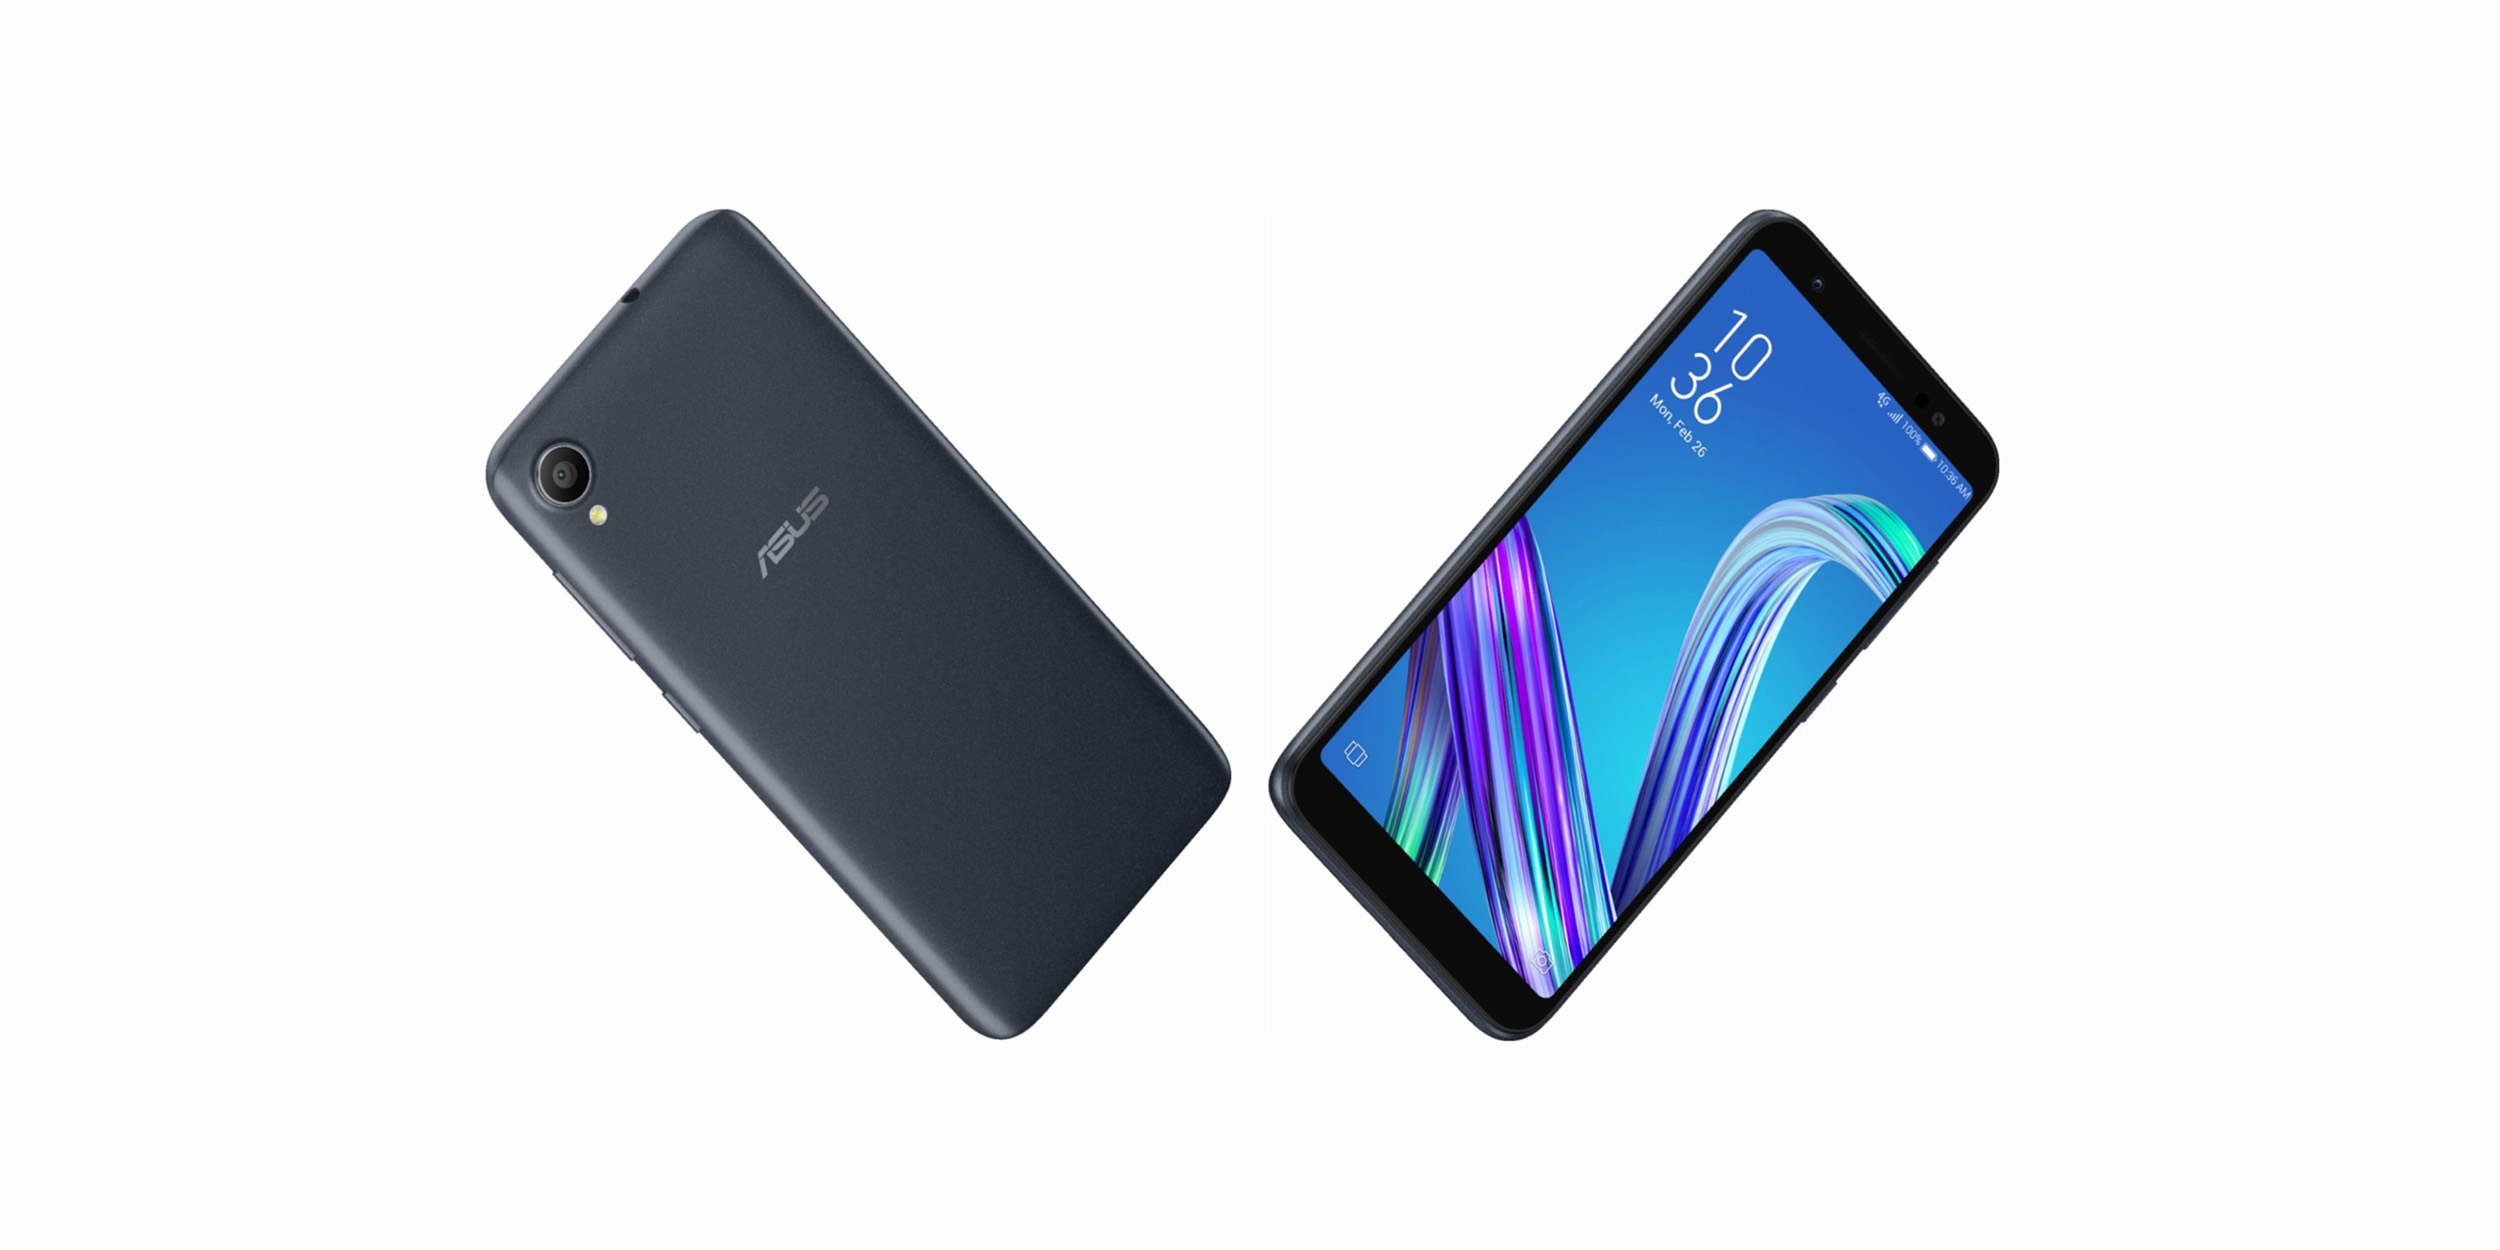 asus zenfone live launches for 109 w android go and snapdragon 425